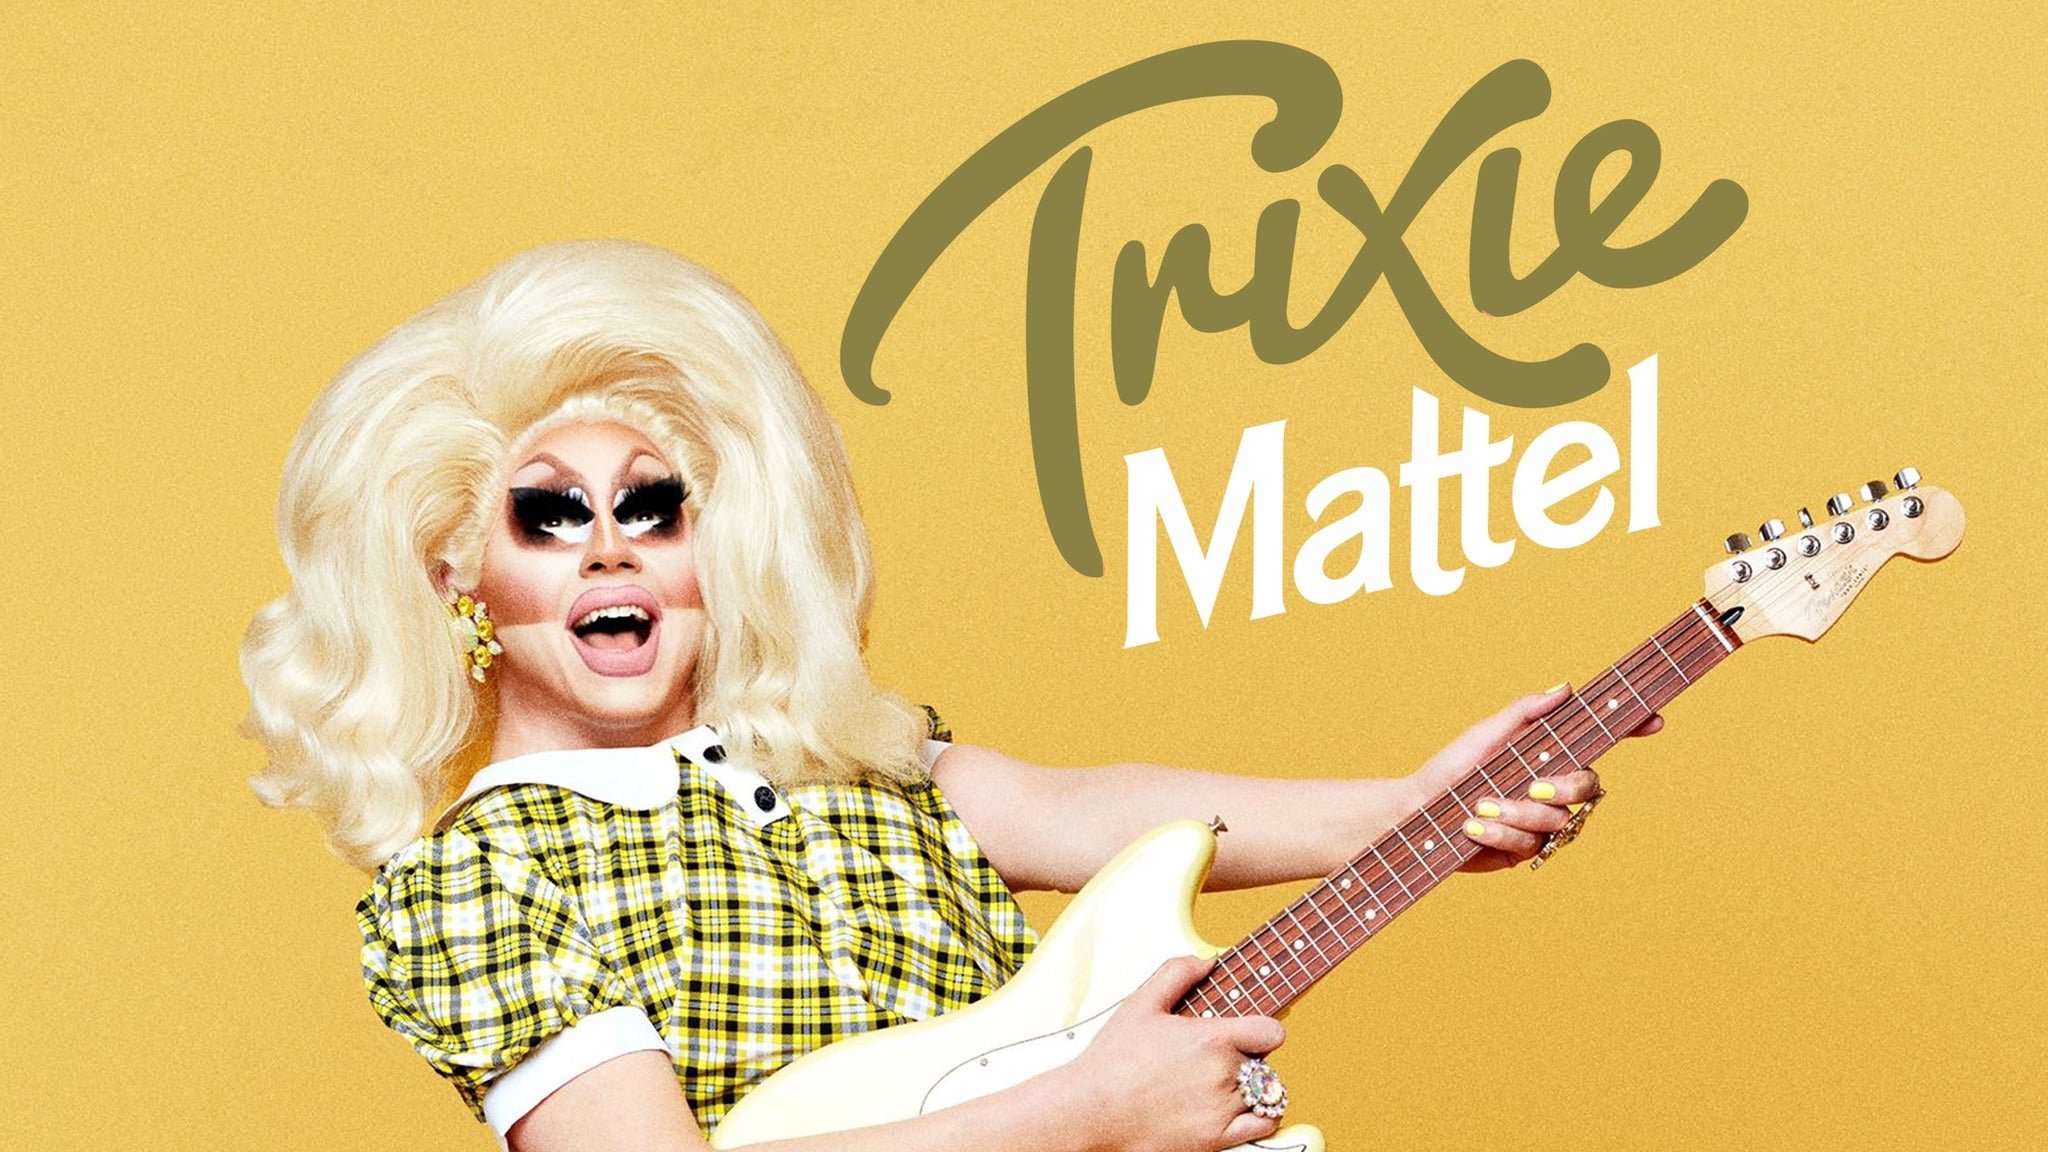 Trixie Mattel: Grown Up at State Theatre